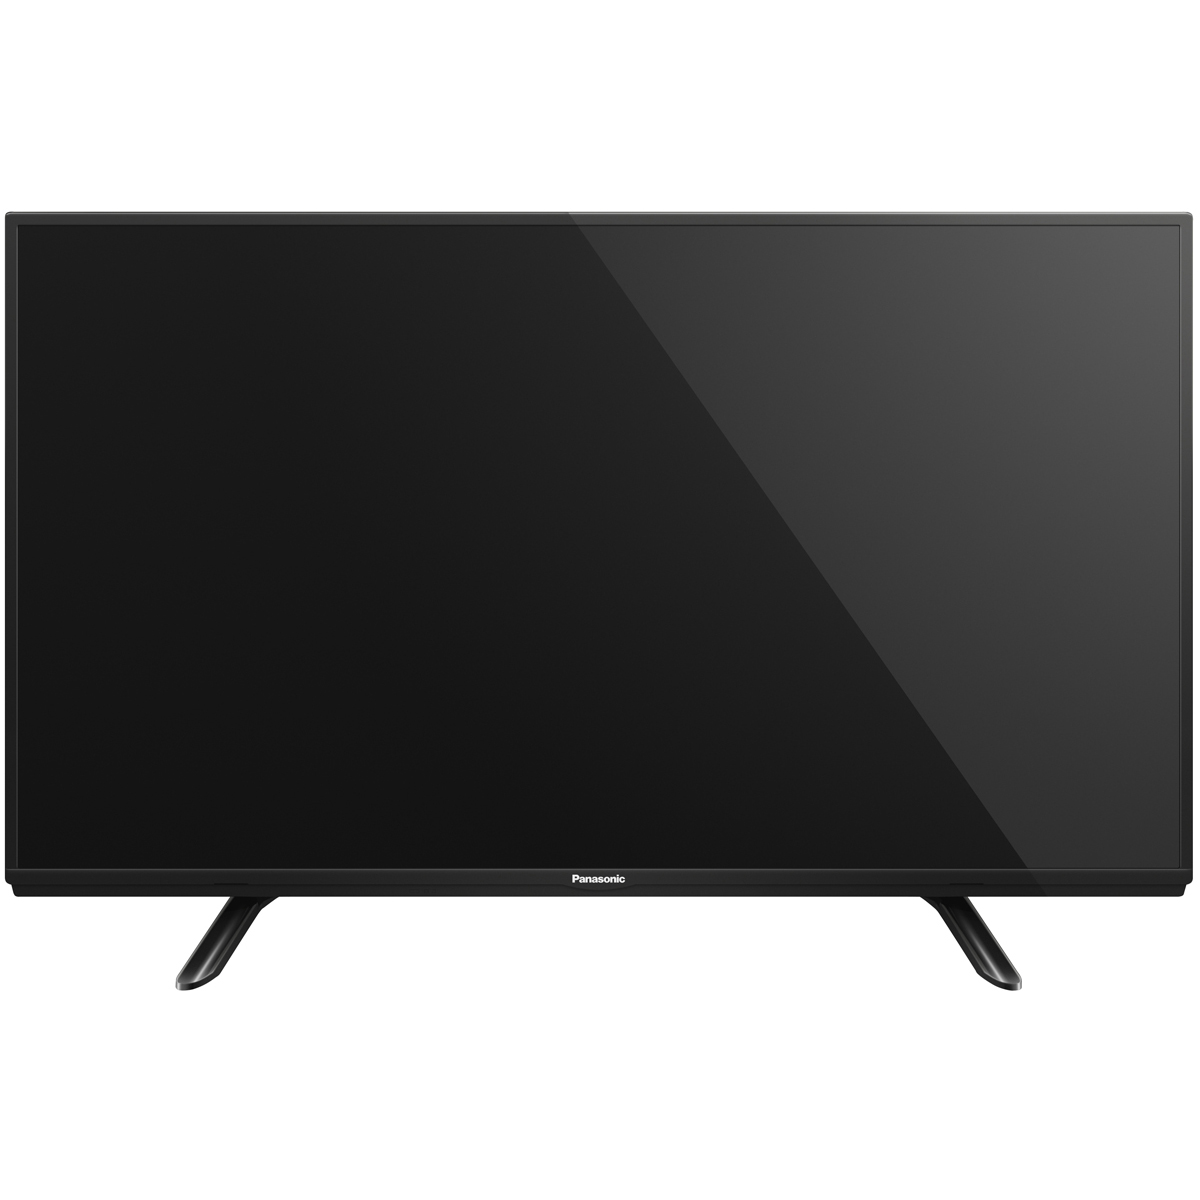 Panasonic TH-40D400A 40 Inch 101cm Full HD LED LCD TV